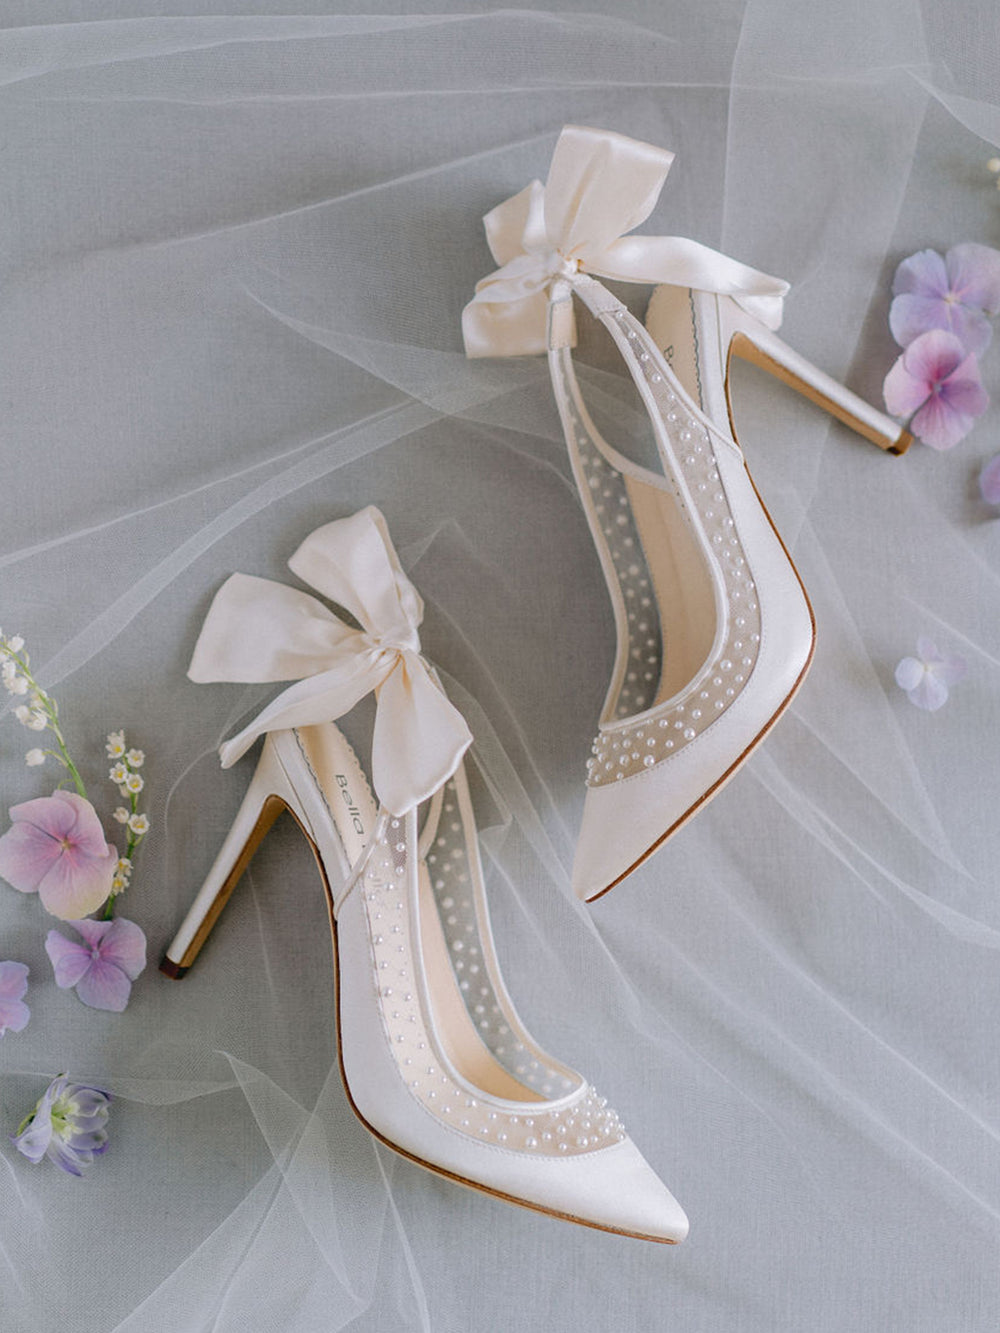 Bella Belle Shoes Romantic Handmade Wedding Shoes